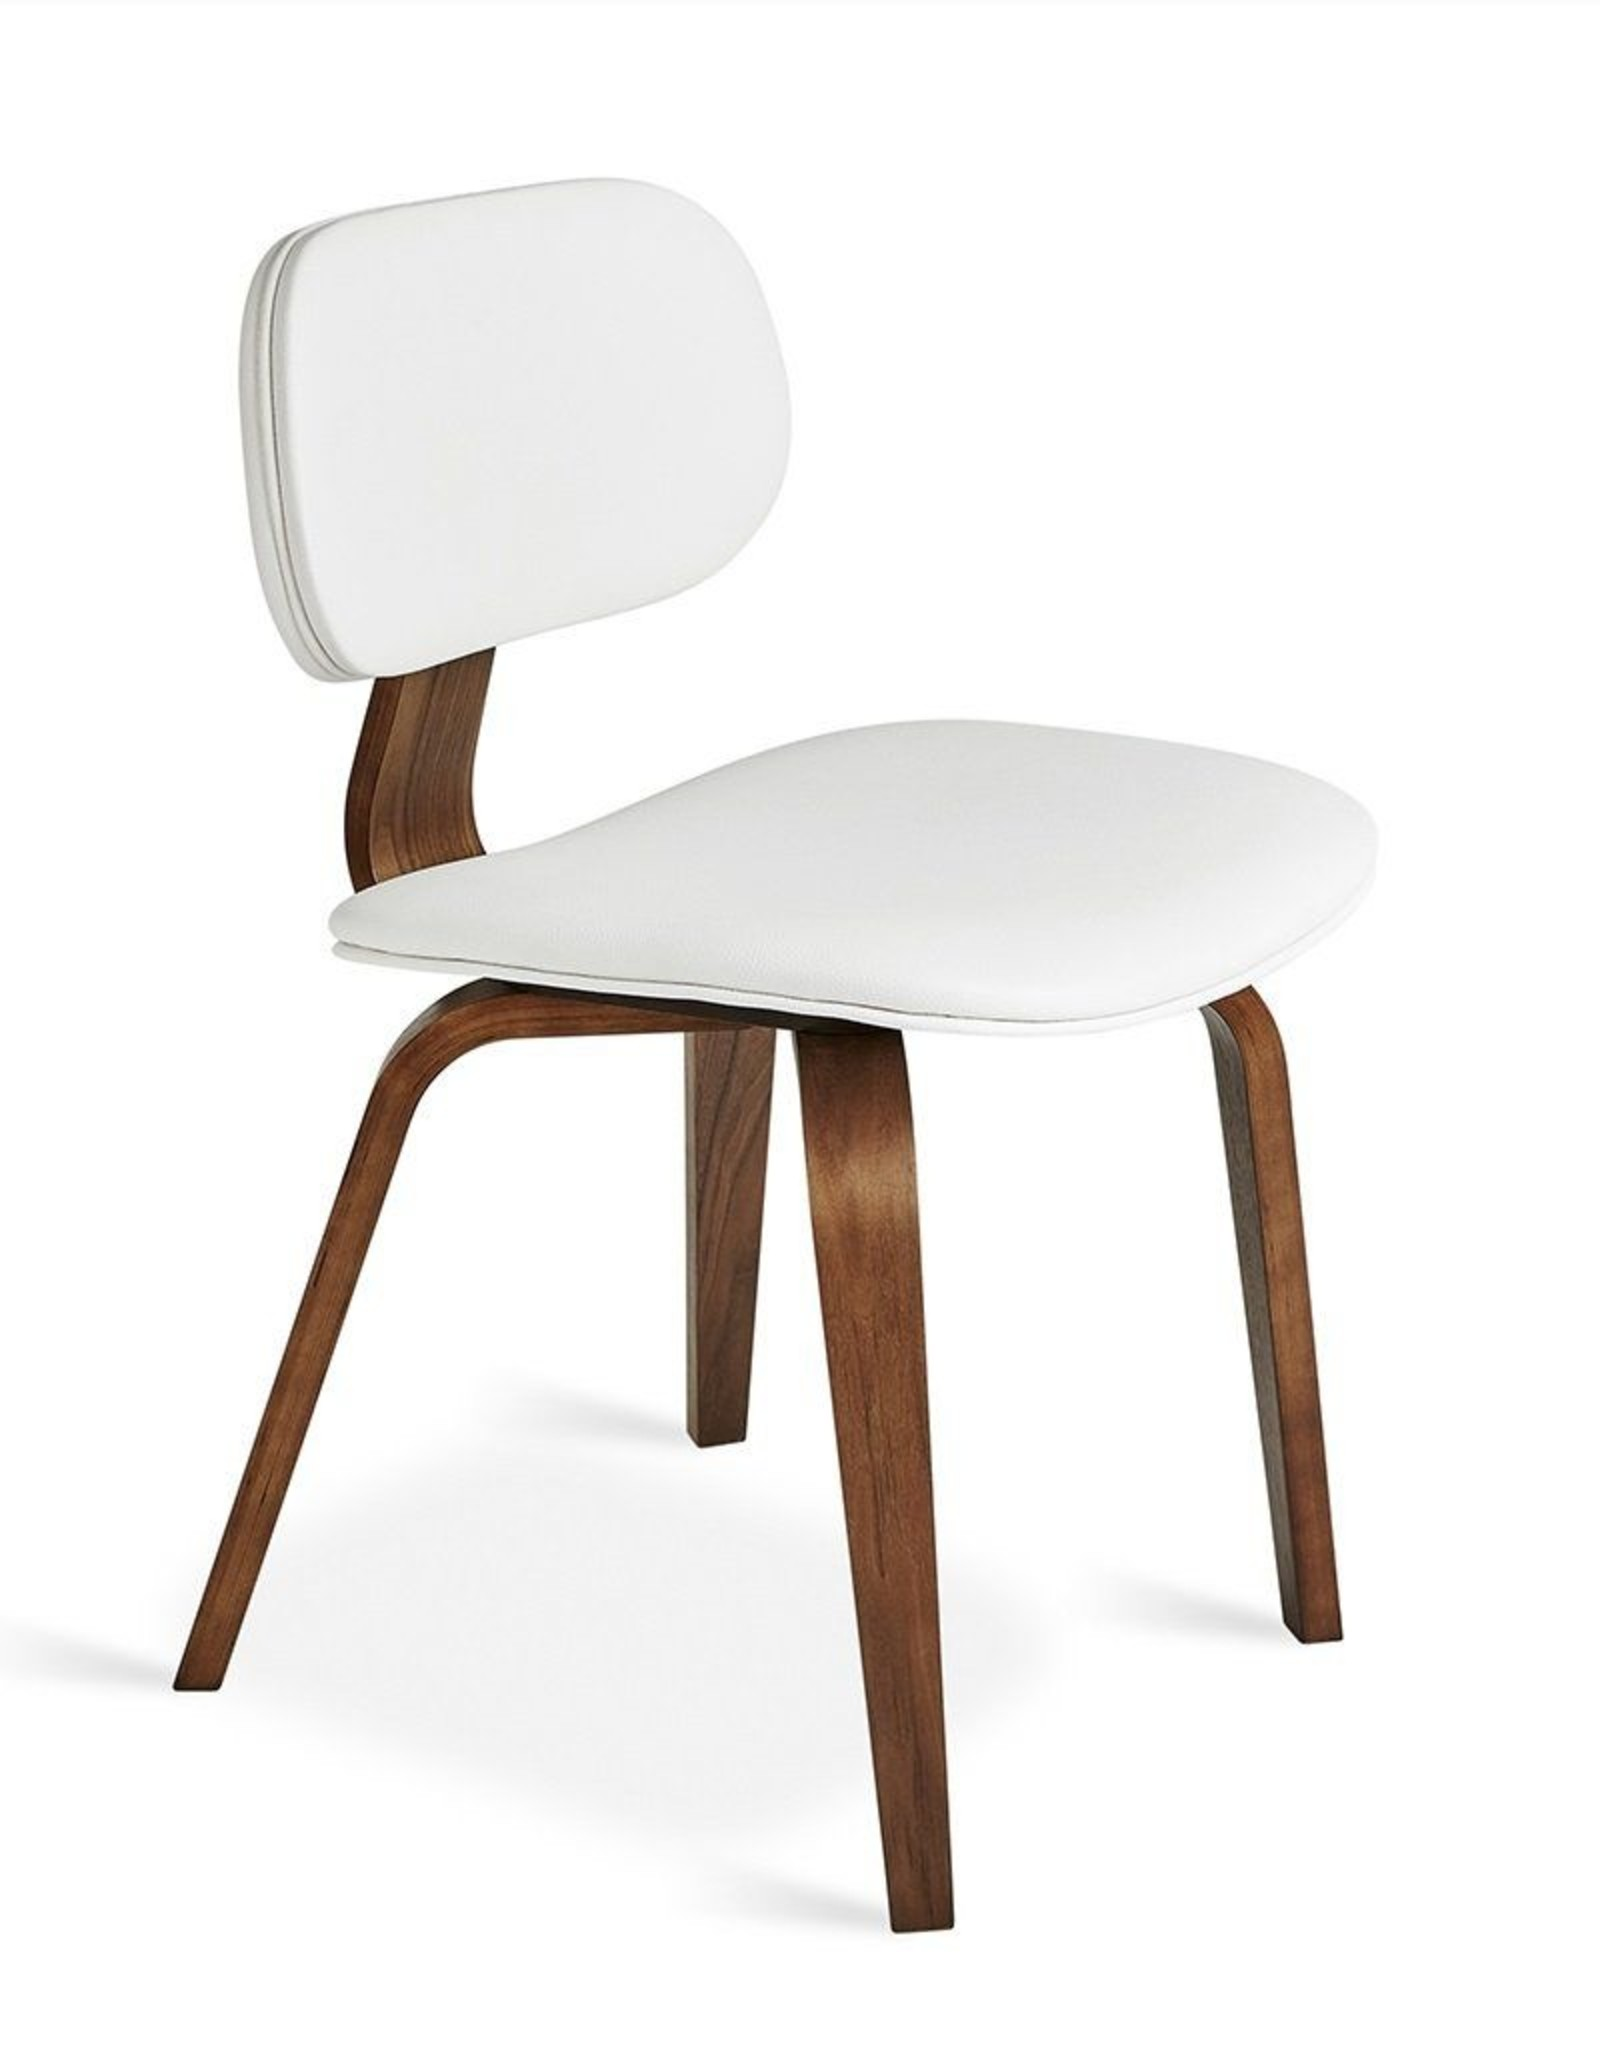 Gus* Modern Thompson Chair